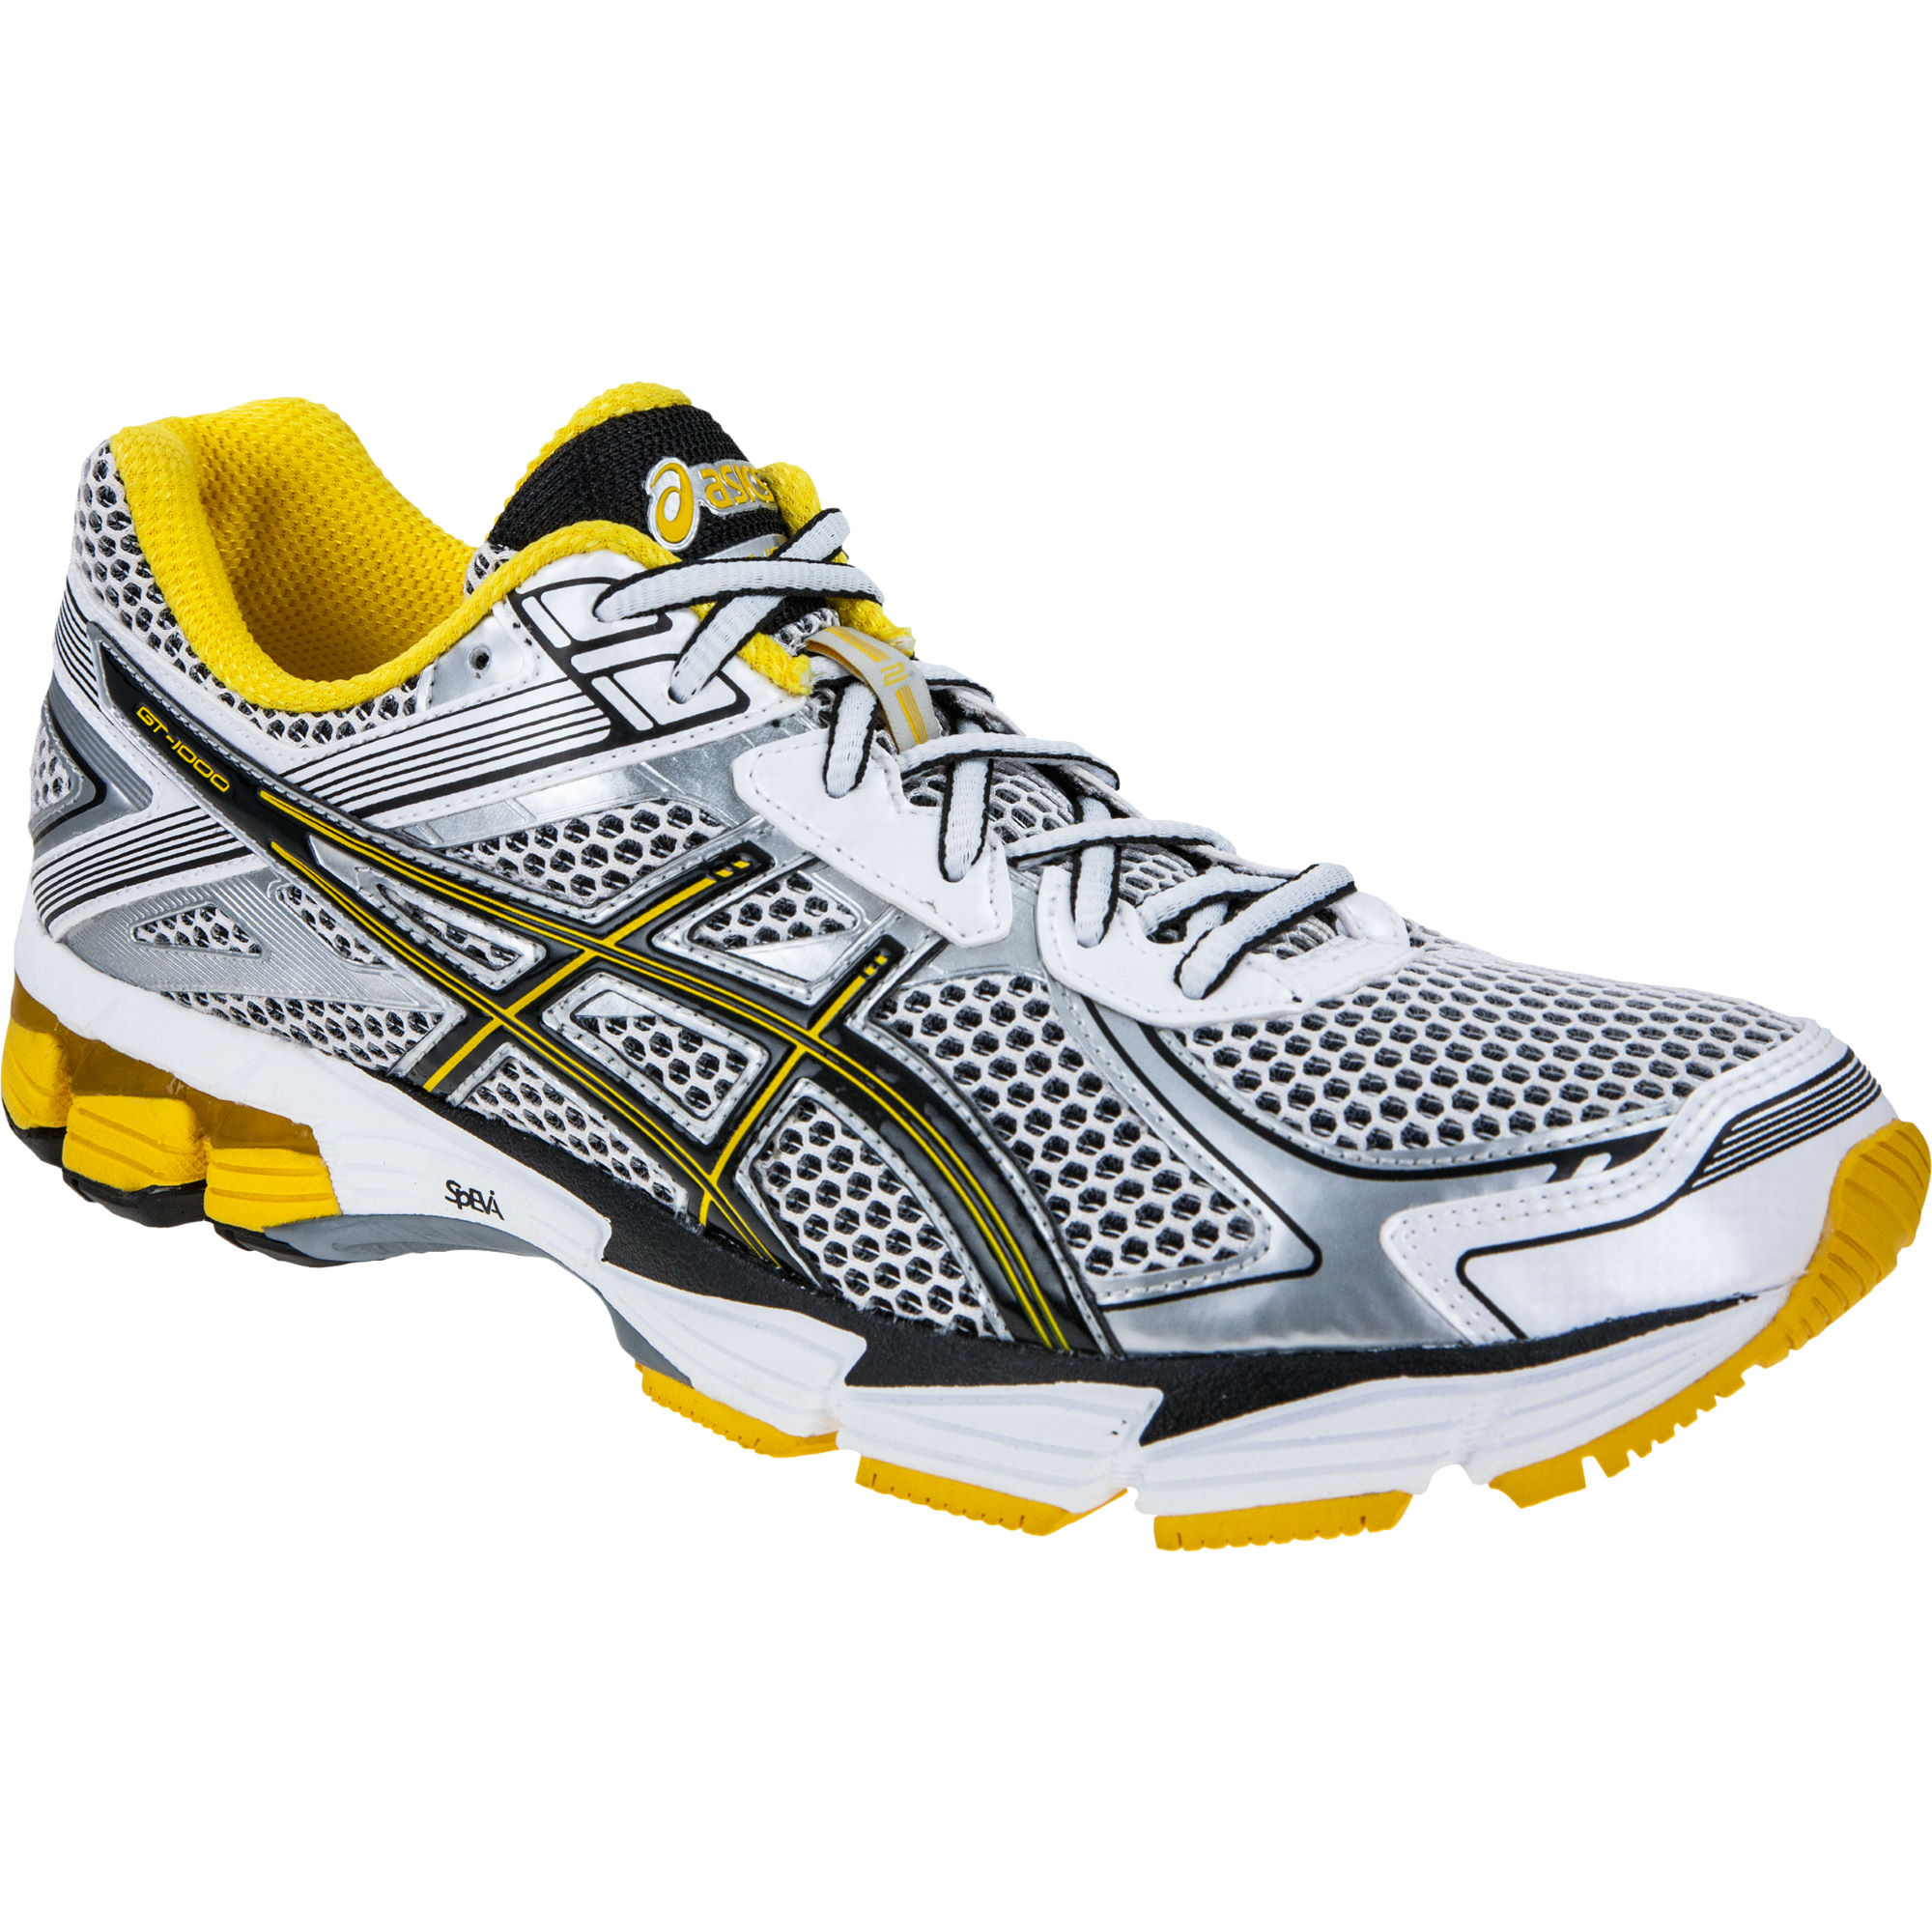 wiggle asics gt 1000 2 shoes ss14 stability running. Black Bedroom Furniture Sets. Home Design Ideas